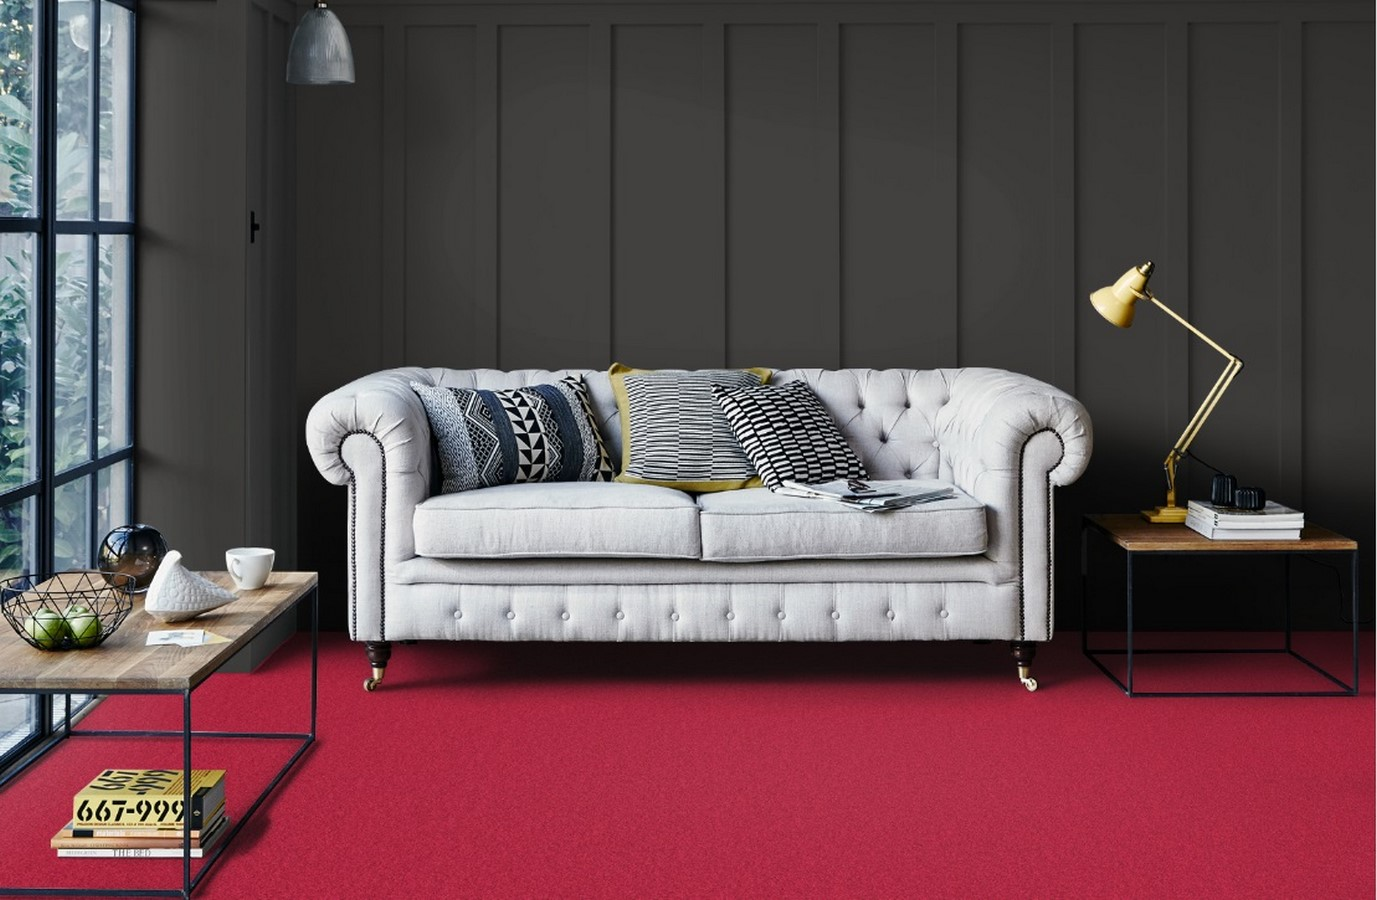 10 Ways to style rugs in your home! - Sheet16